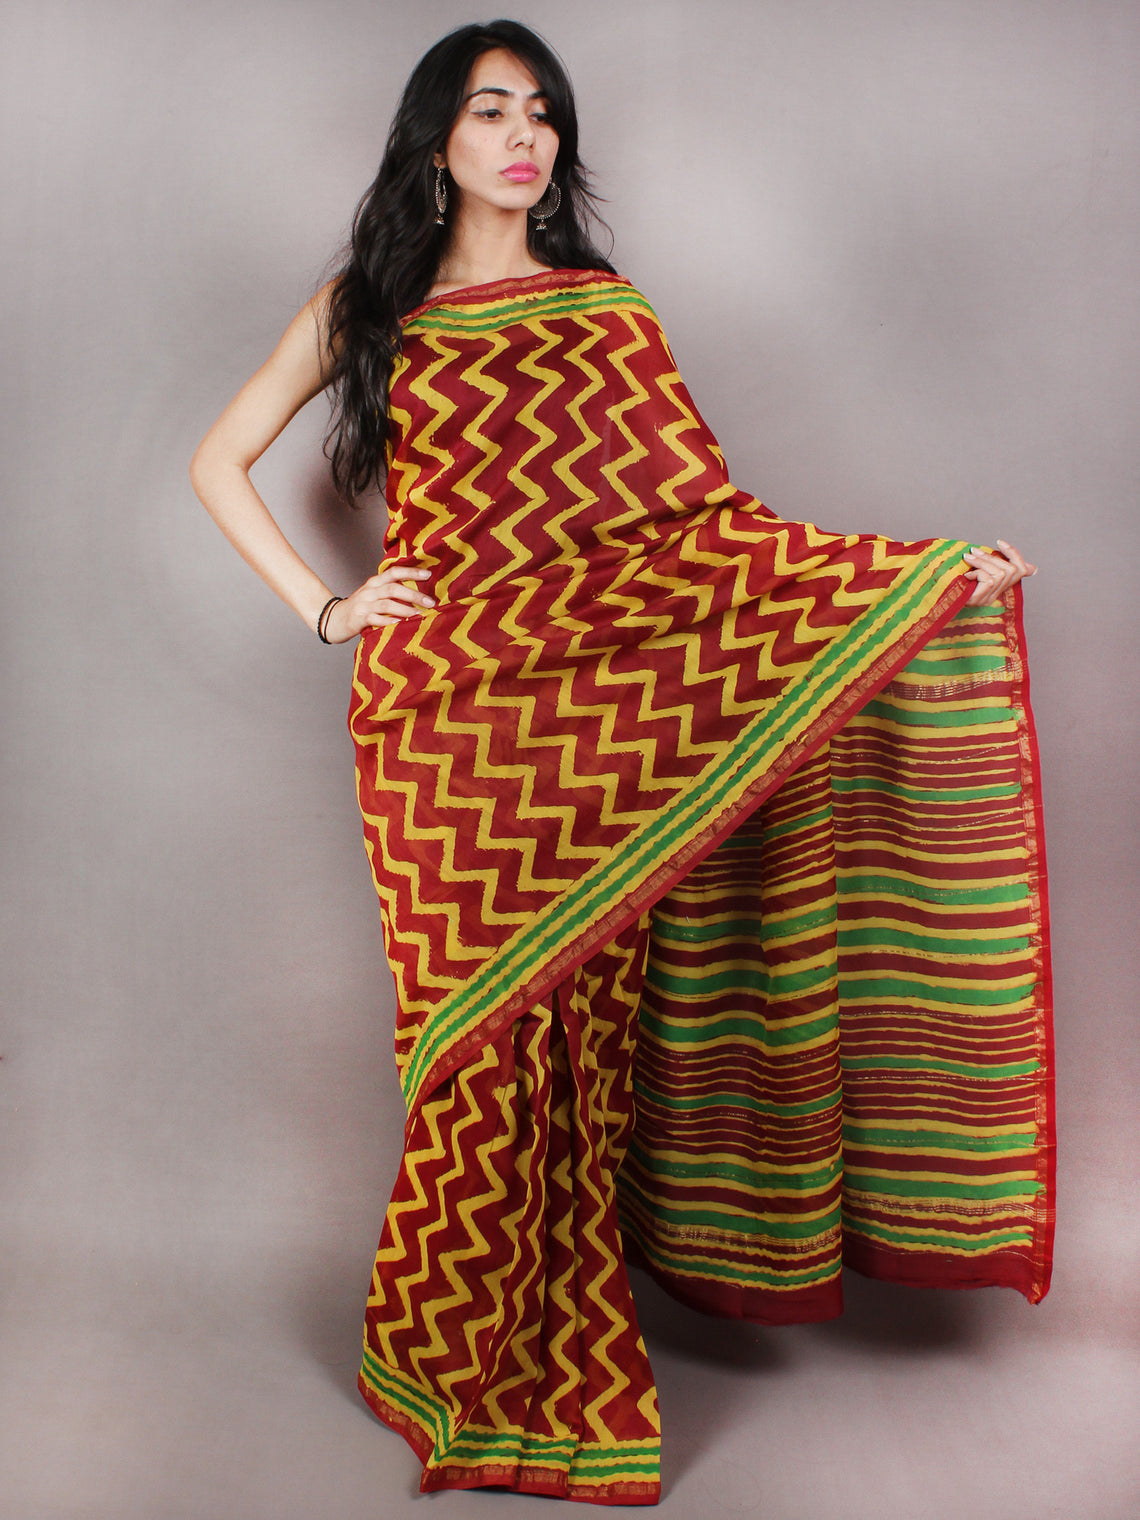 Maroon Yellow Green Hand Block Printed in Natural Colors Chanderi Saree - S03170774